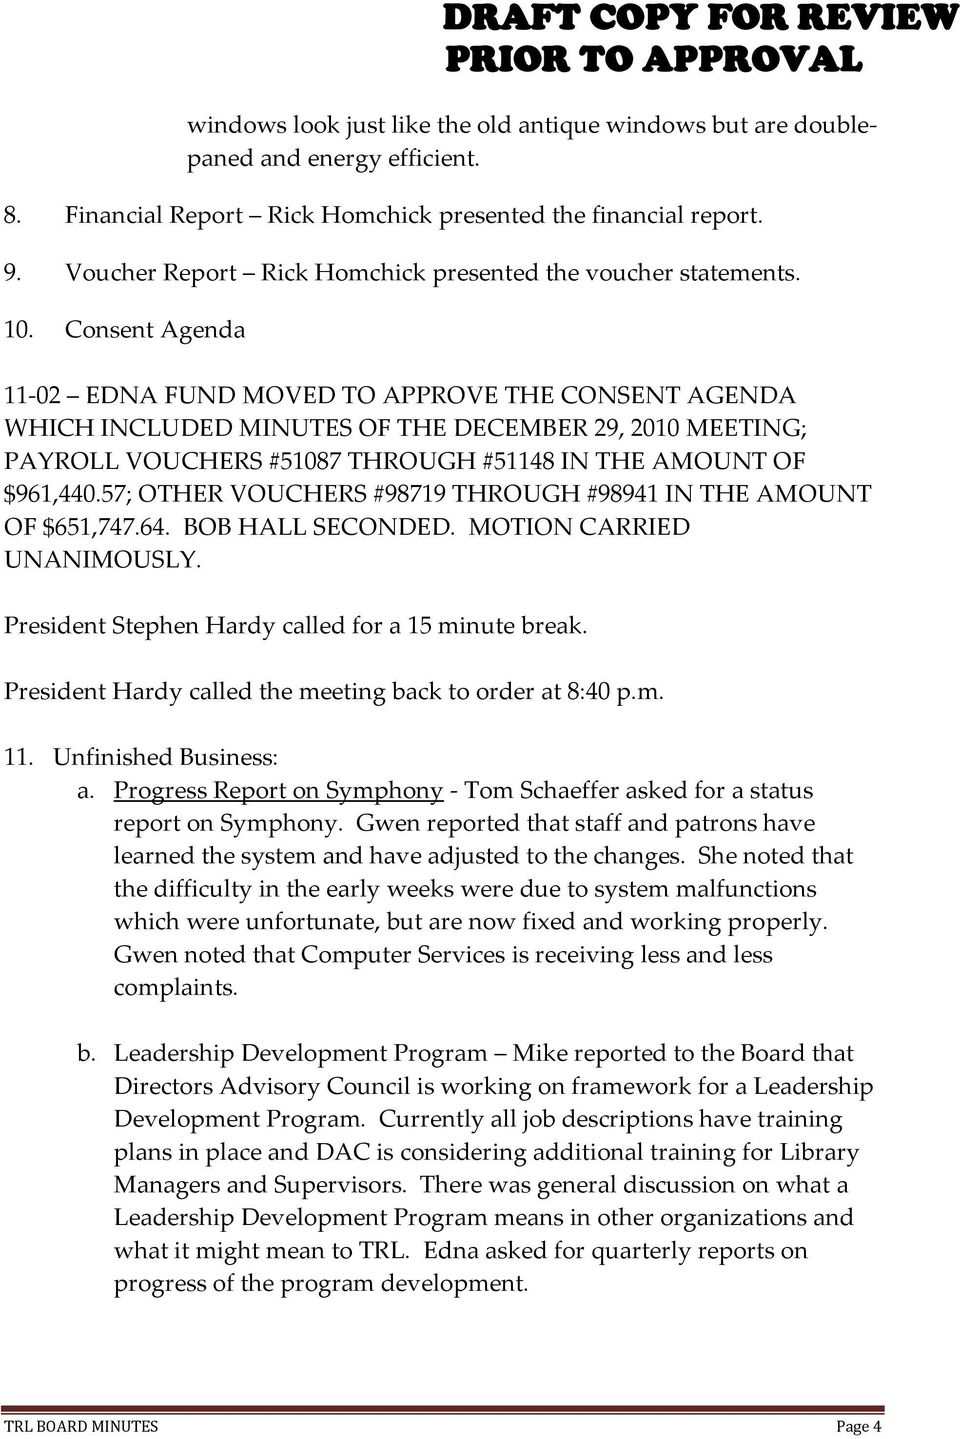 Consent Agenda 11-02 EDNA FUND MOVED TO APPROVE THE CONSENT AGENDA WHICH INCLUDED MINUTES OF THE DECEMBER 29, 2010 MEETING; PAYROLL VOUCHERS #51087 THROUGH #51148 IN THE AMOUNT OF $961,440.